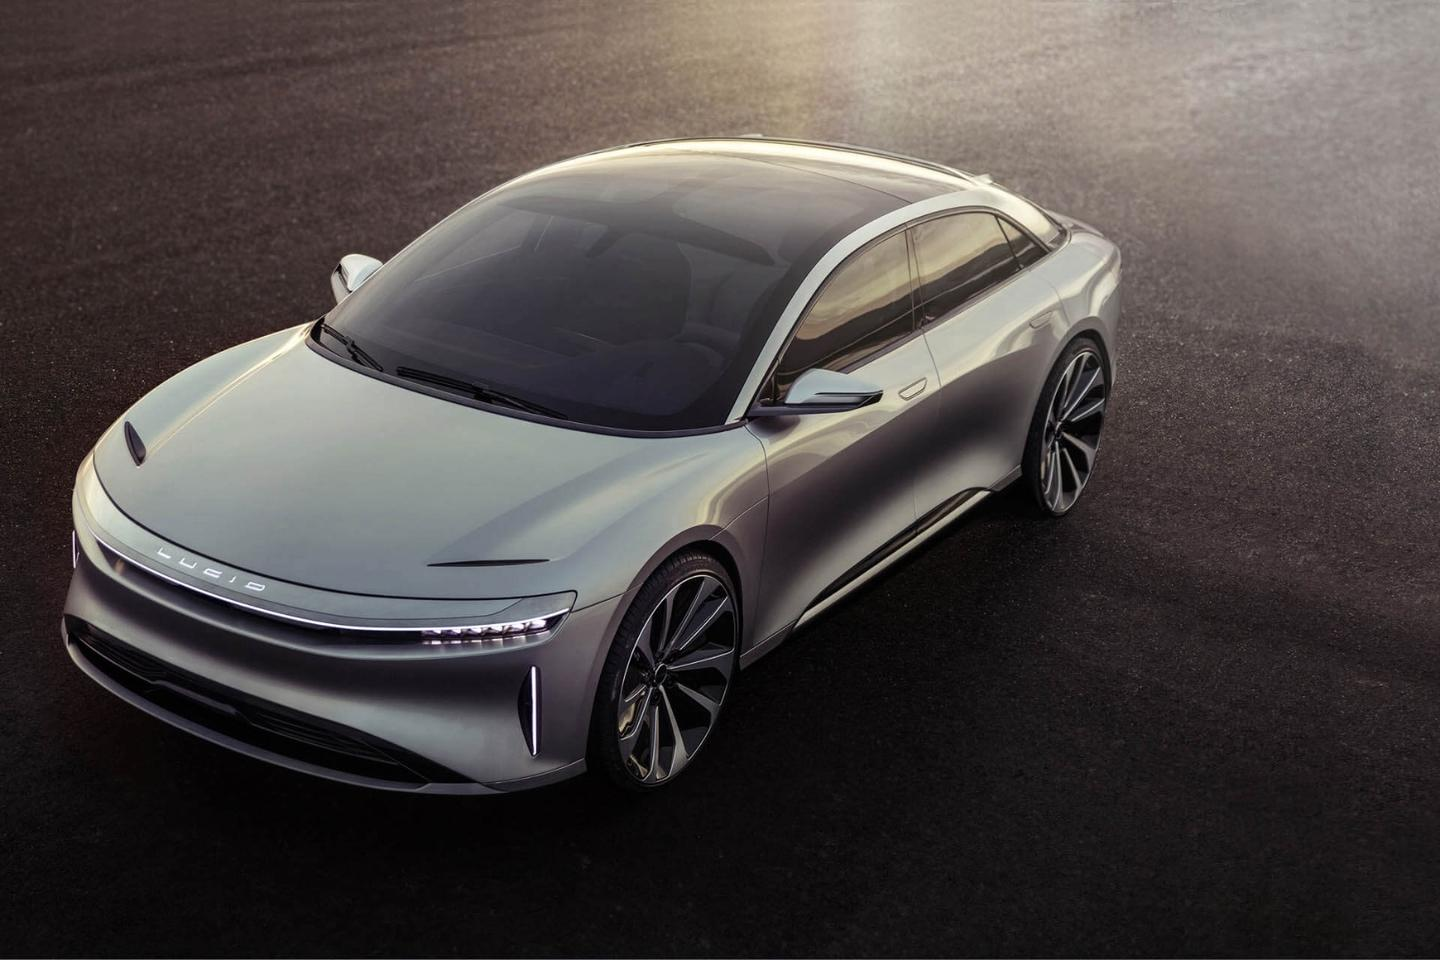 The Lucid Air is squarely targeted at the Model S, with a focus on matching or bettering its performance with a lower price tag